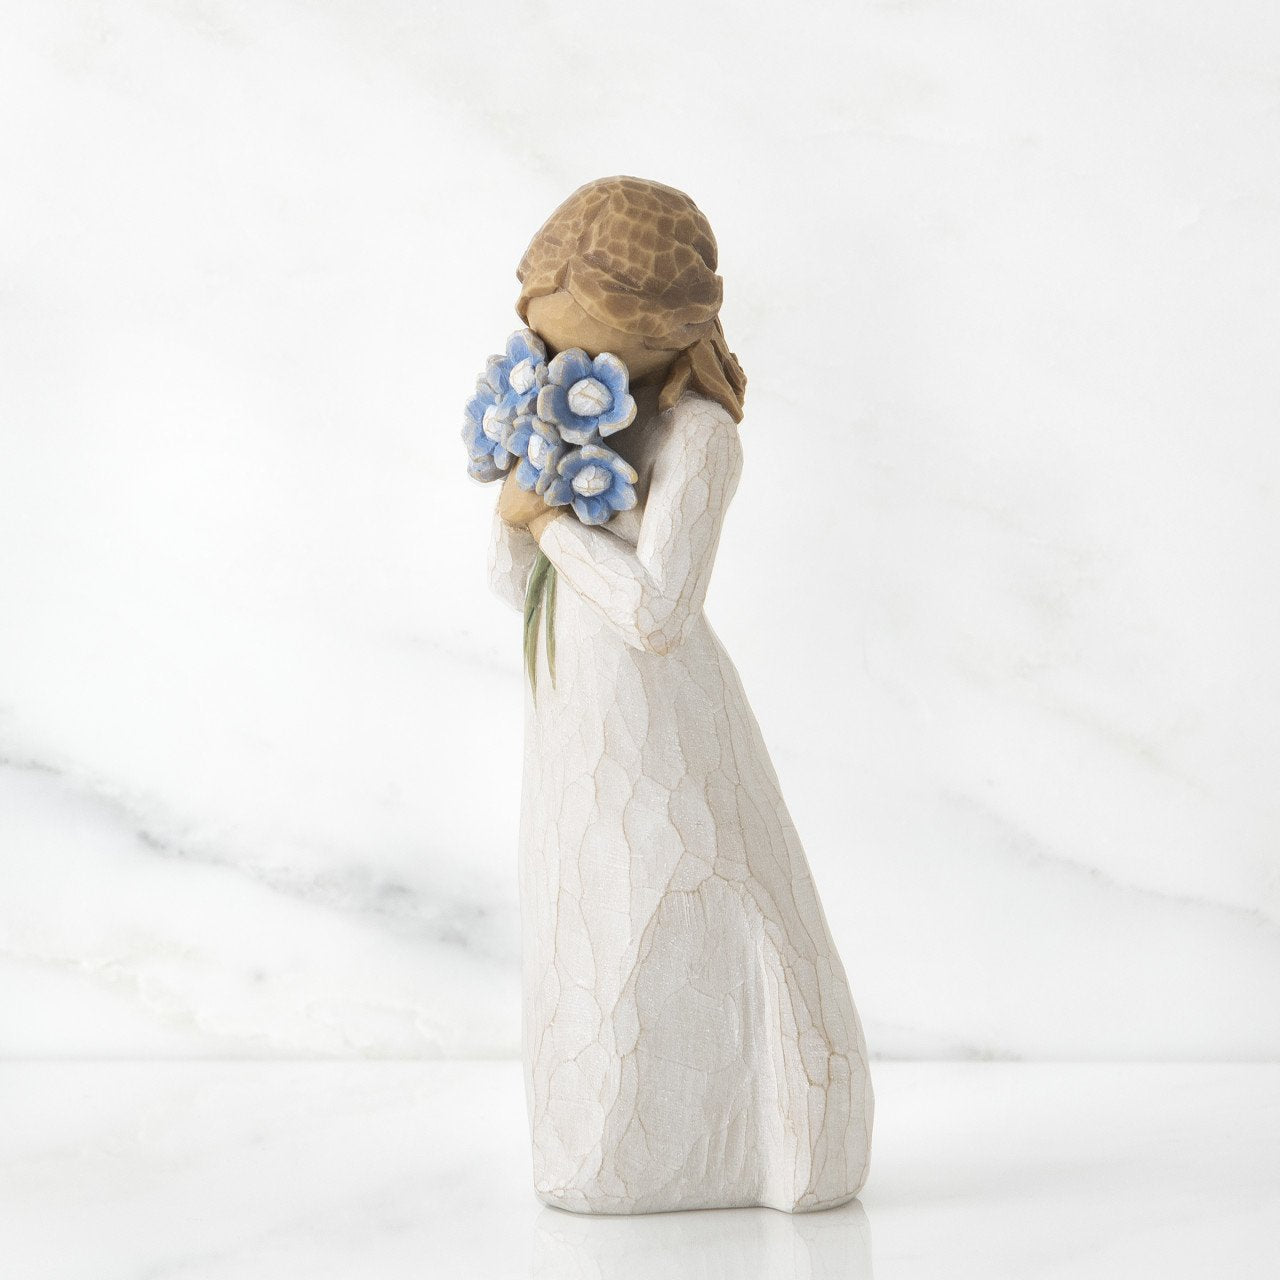 Willow Tree Forget-me-not, sculpted hand-painted figure